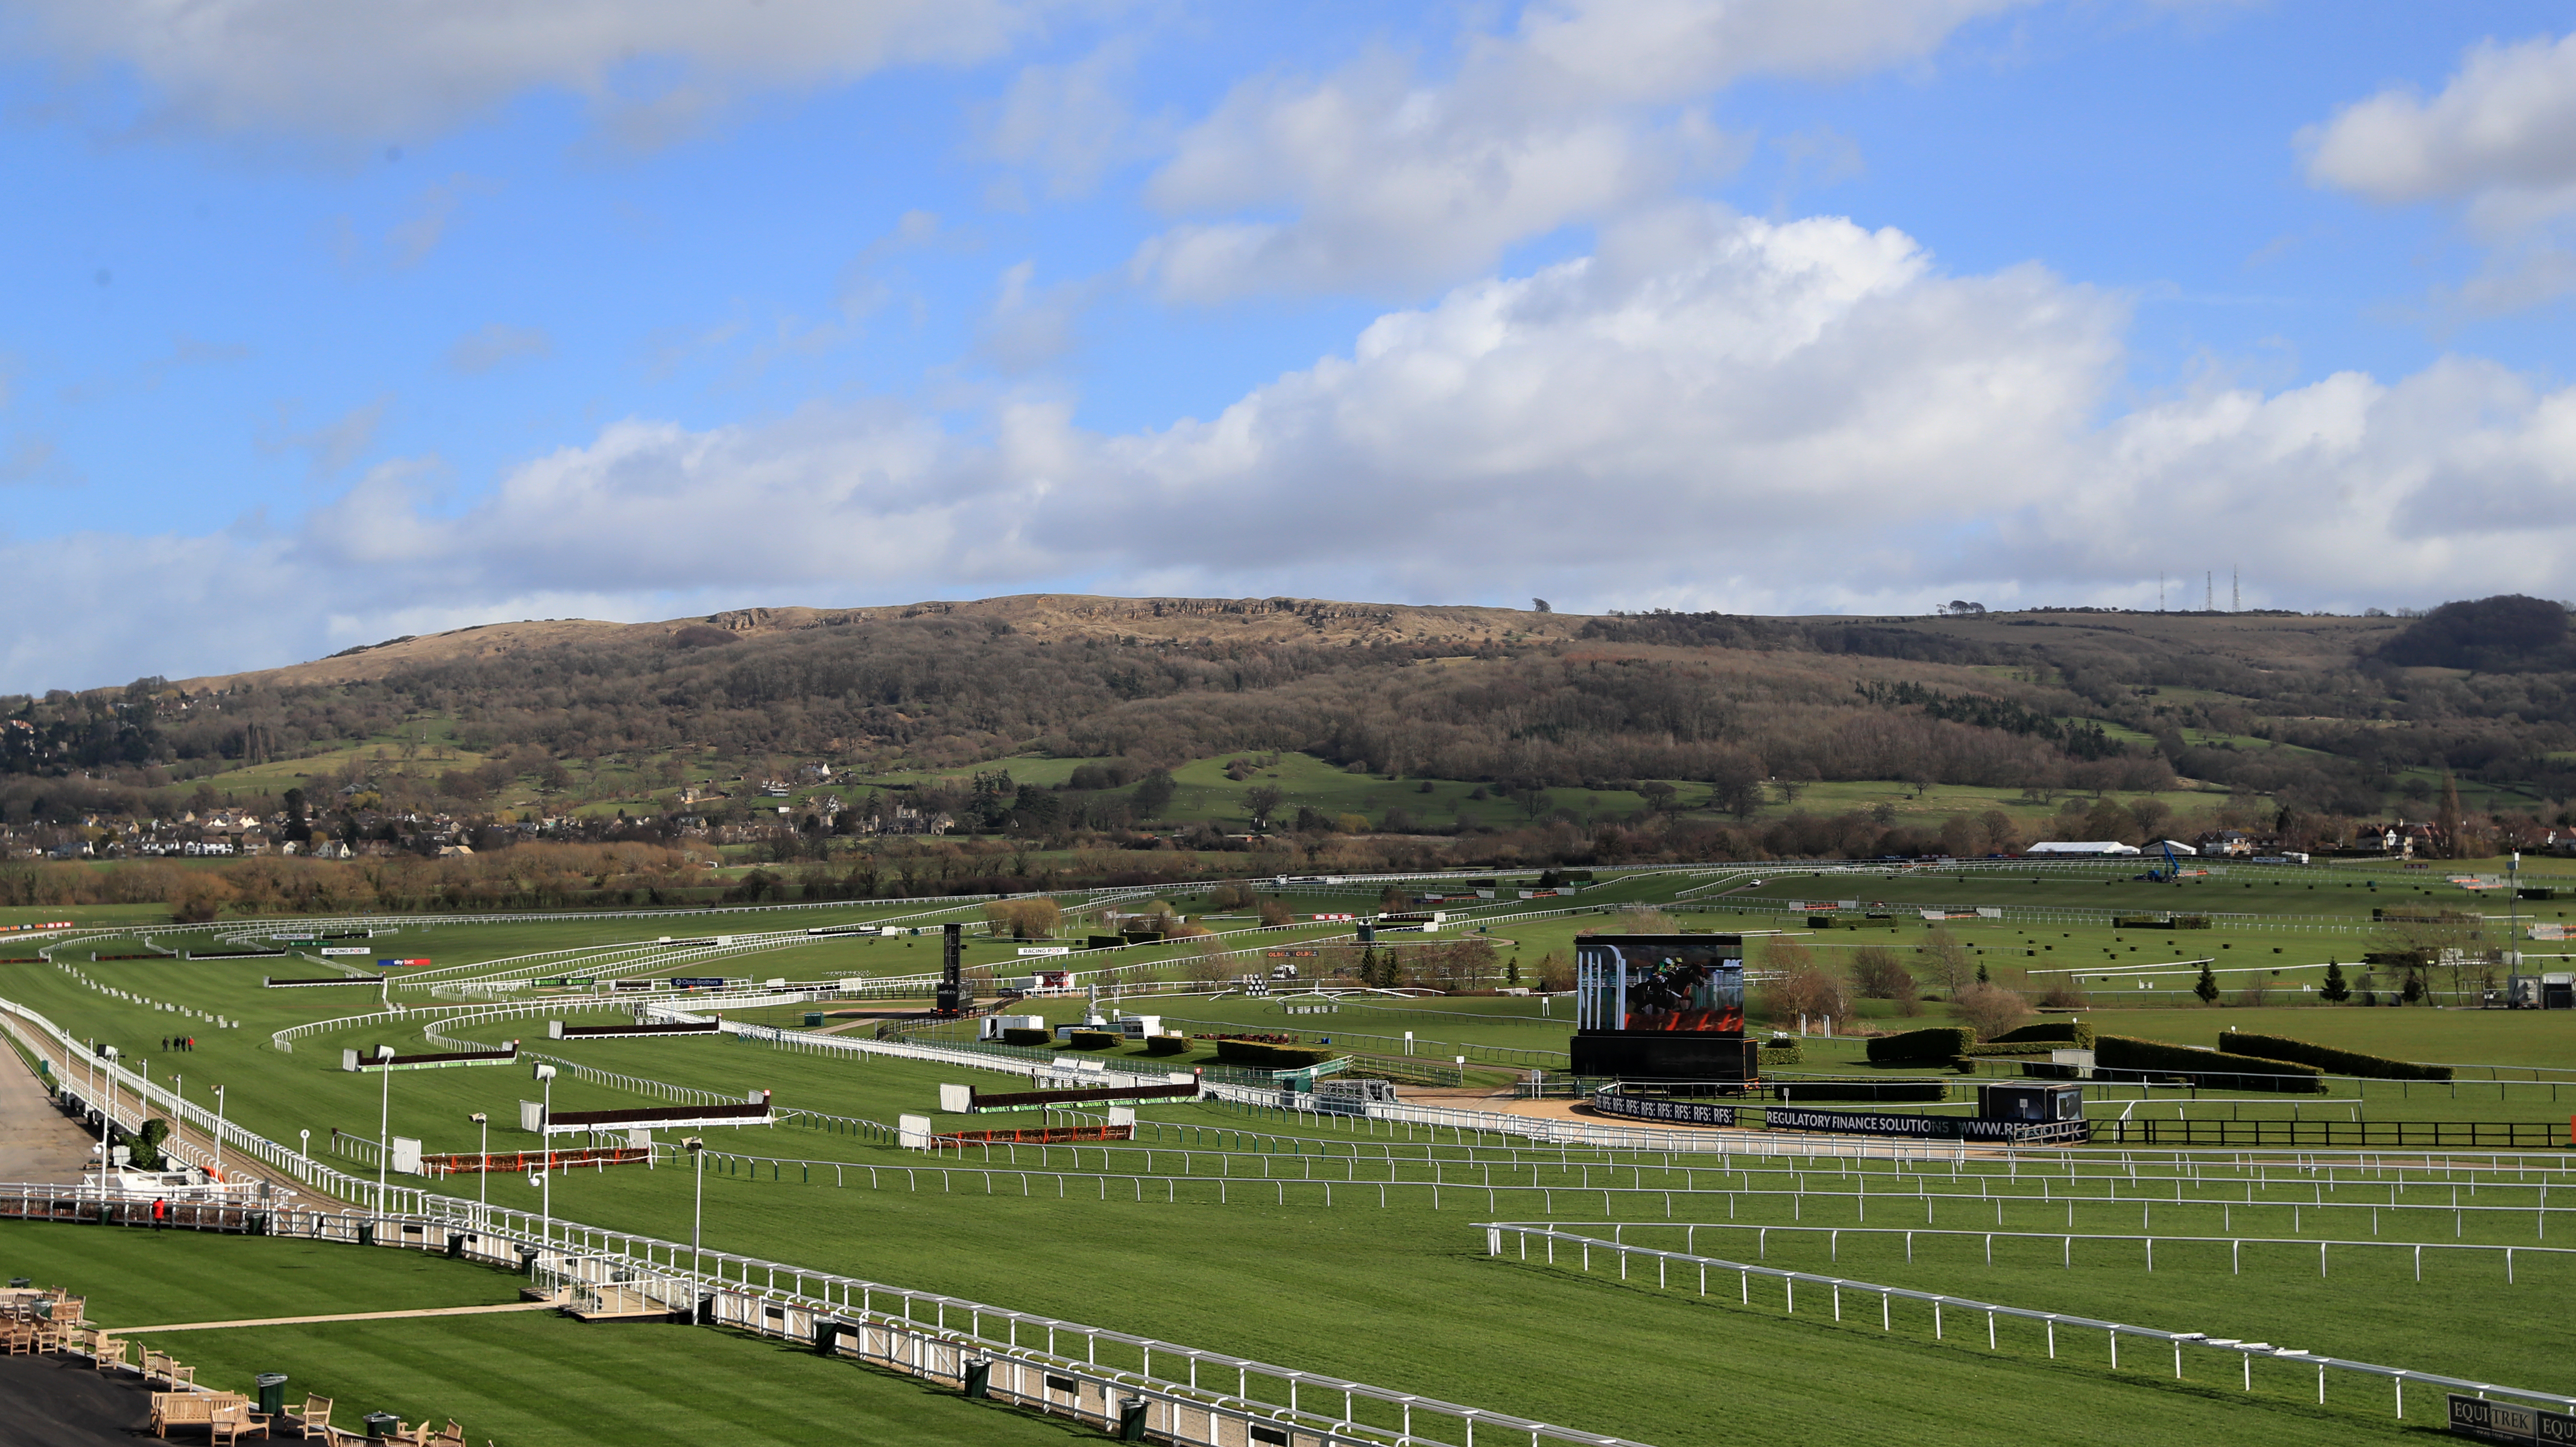 Fortunes will be won and lost at Cheltenham this week